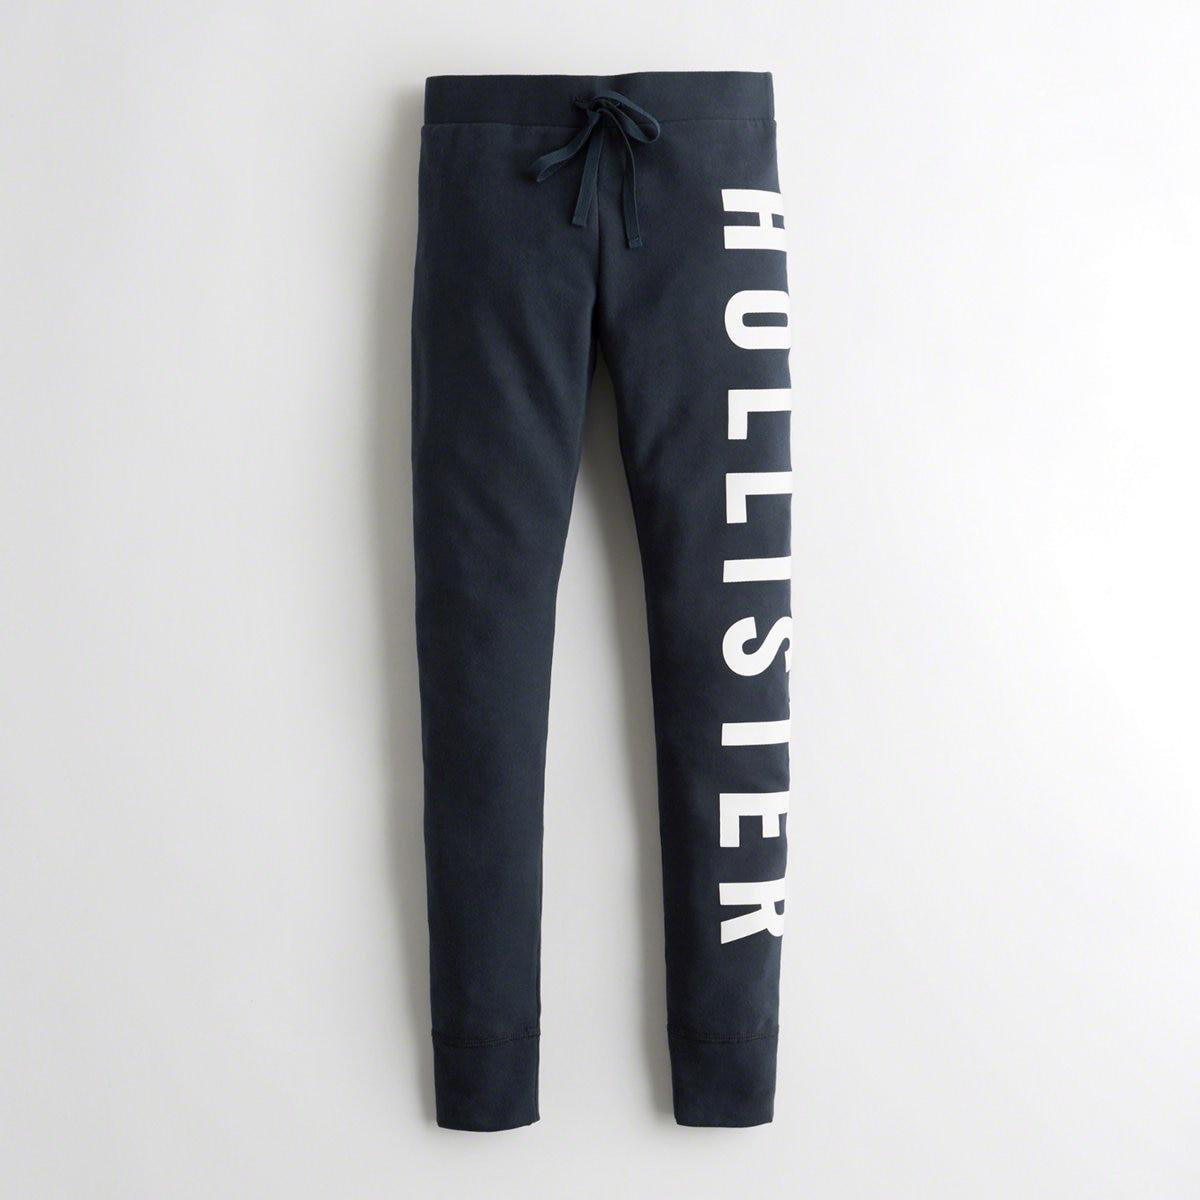 2fedadc9430582 Lyst - Hollister Girls Logo Fleece Leggings From Hollister in Blue